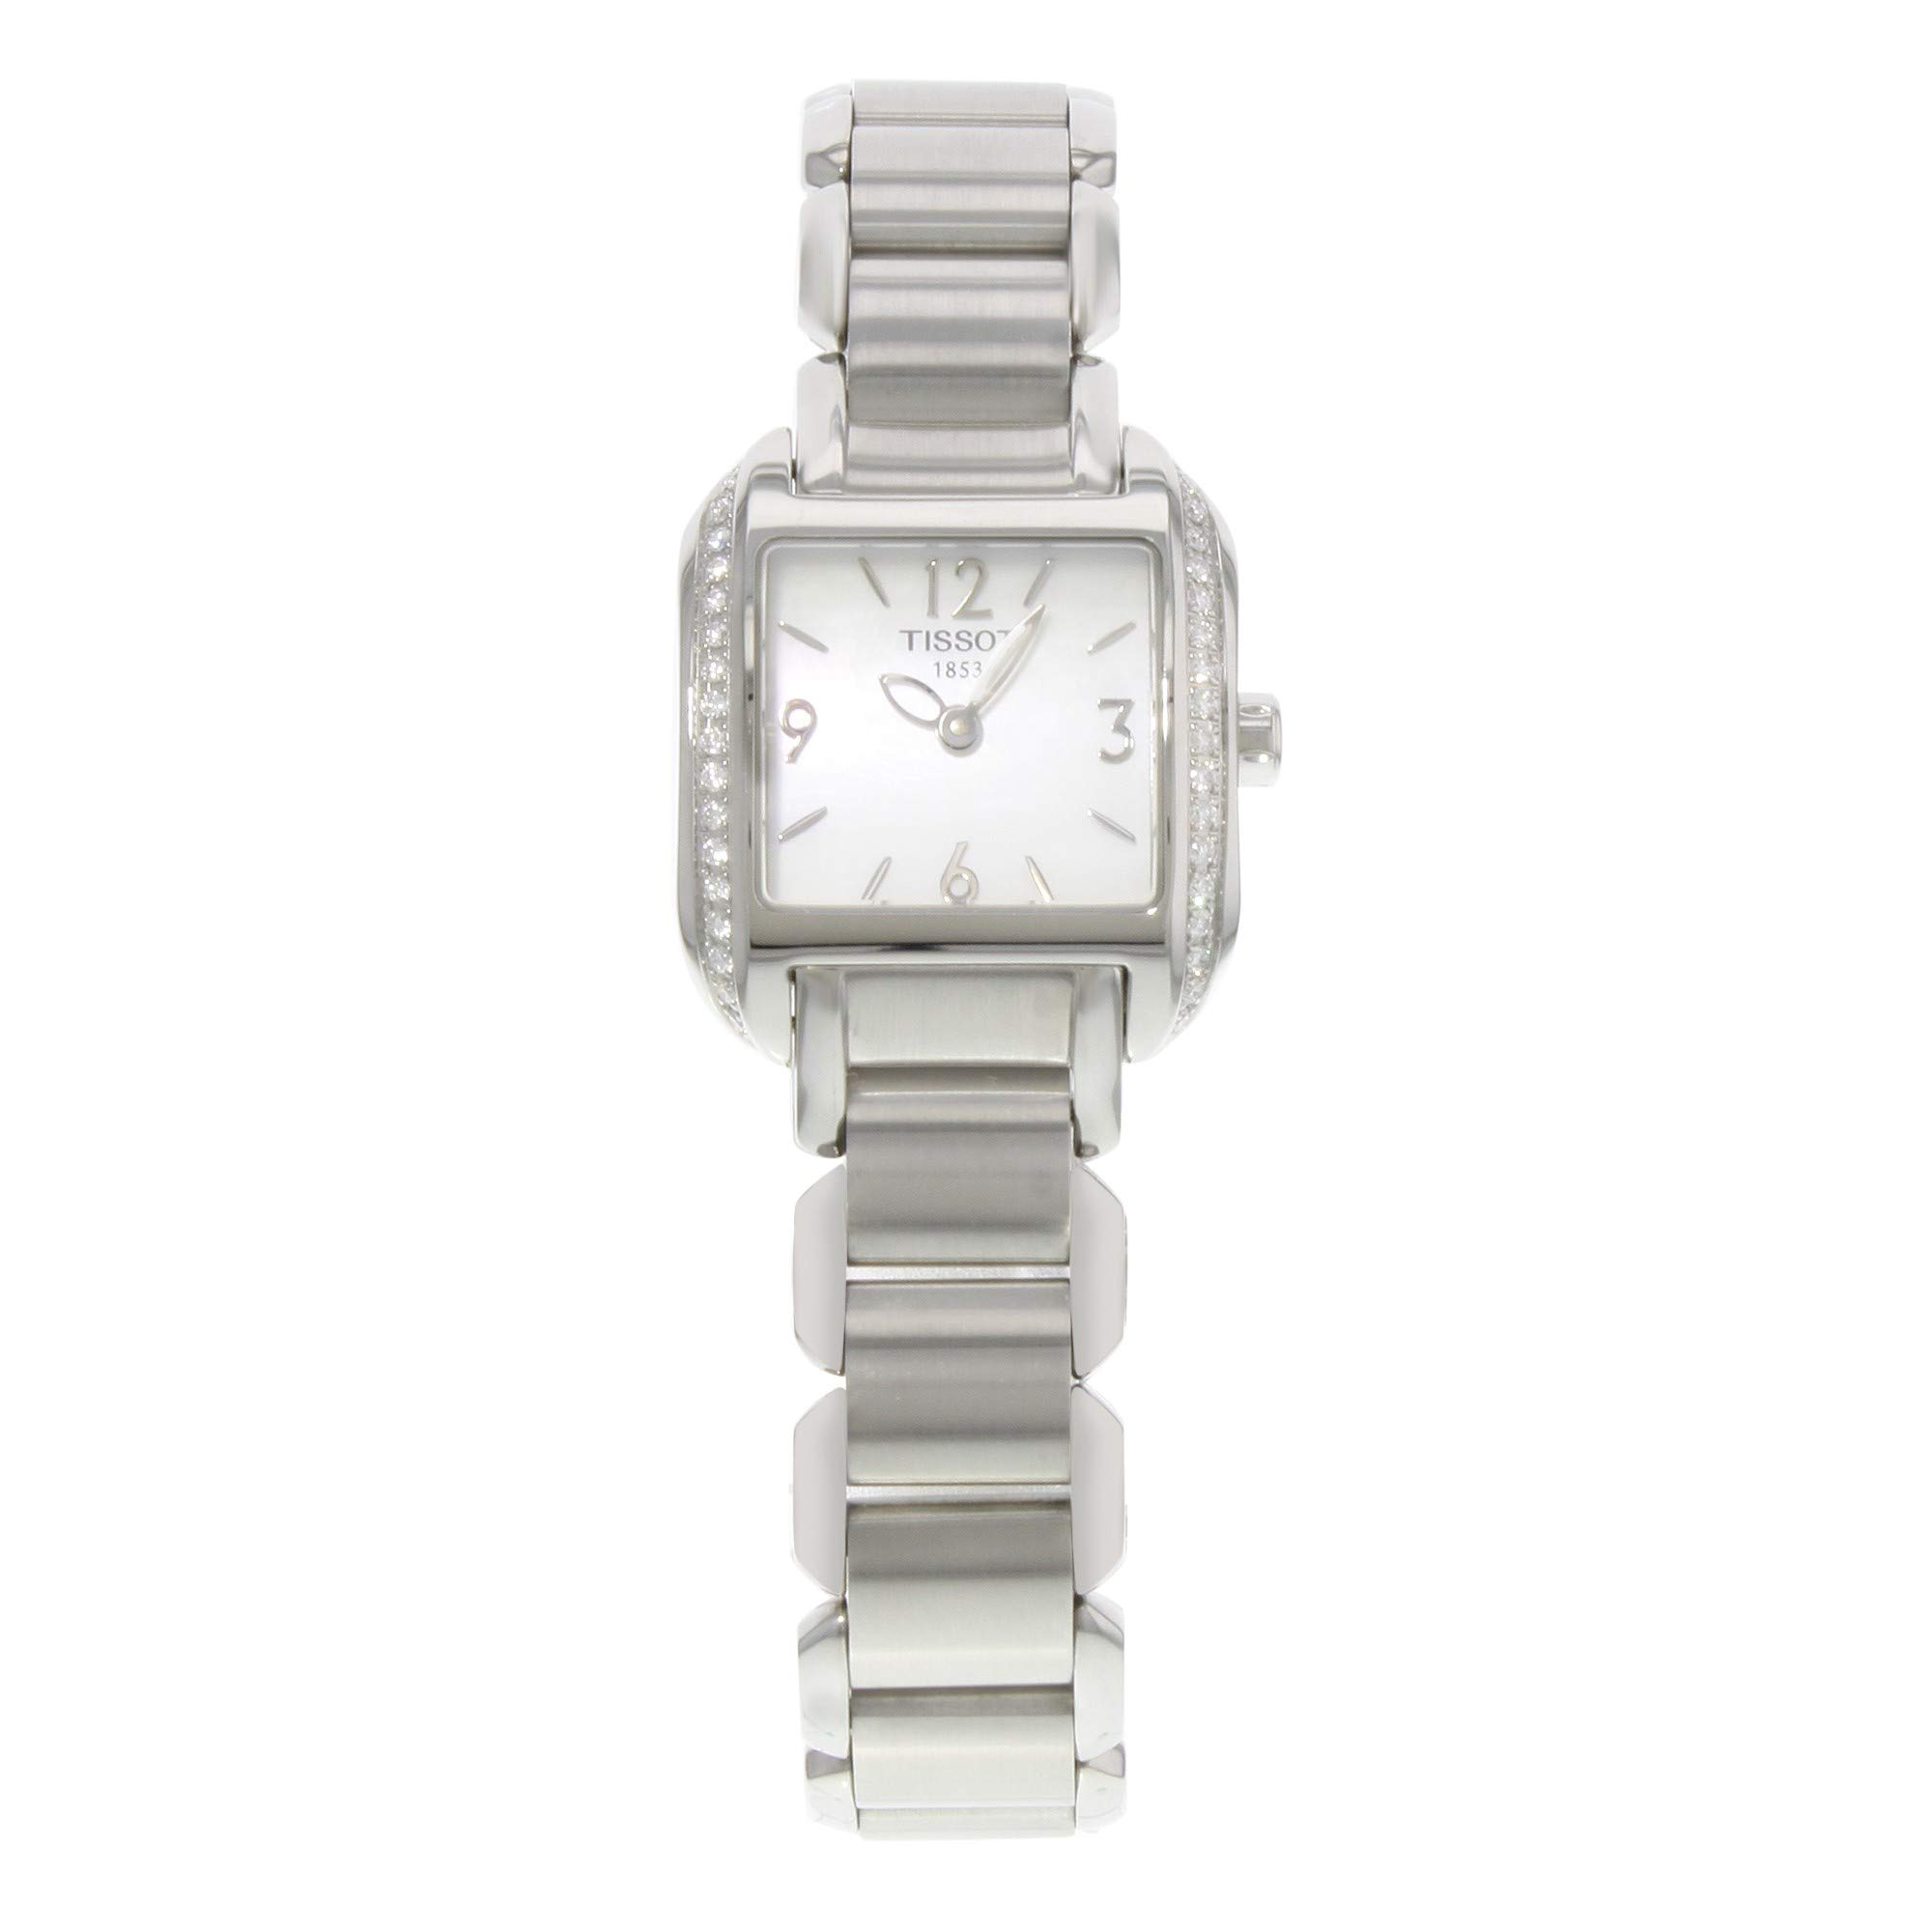 Tissot T-Wave Quartz Female Watch T02.1.385.82 (Certified Pre-Owned) by Tissot